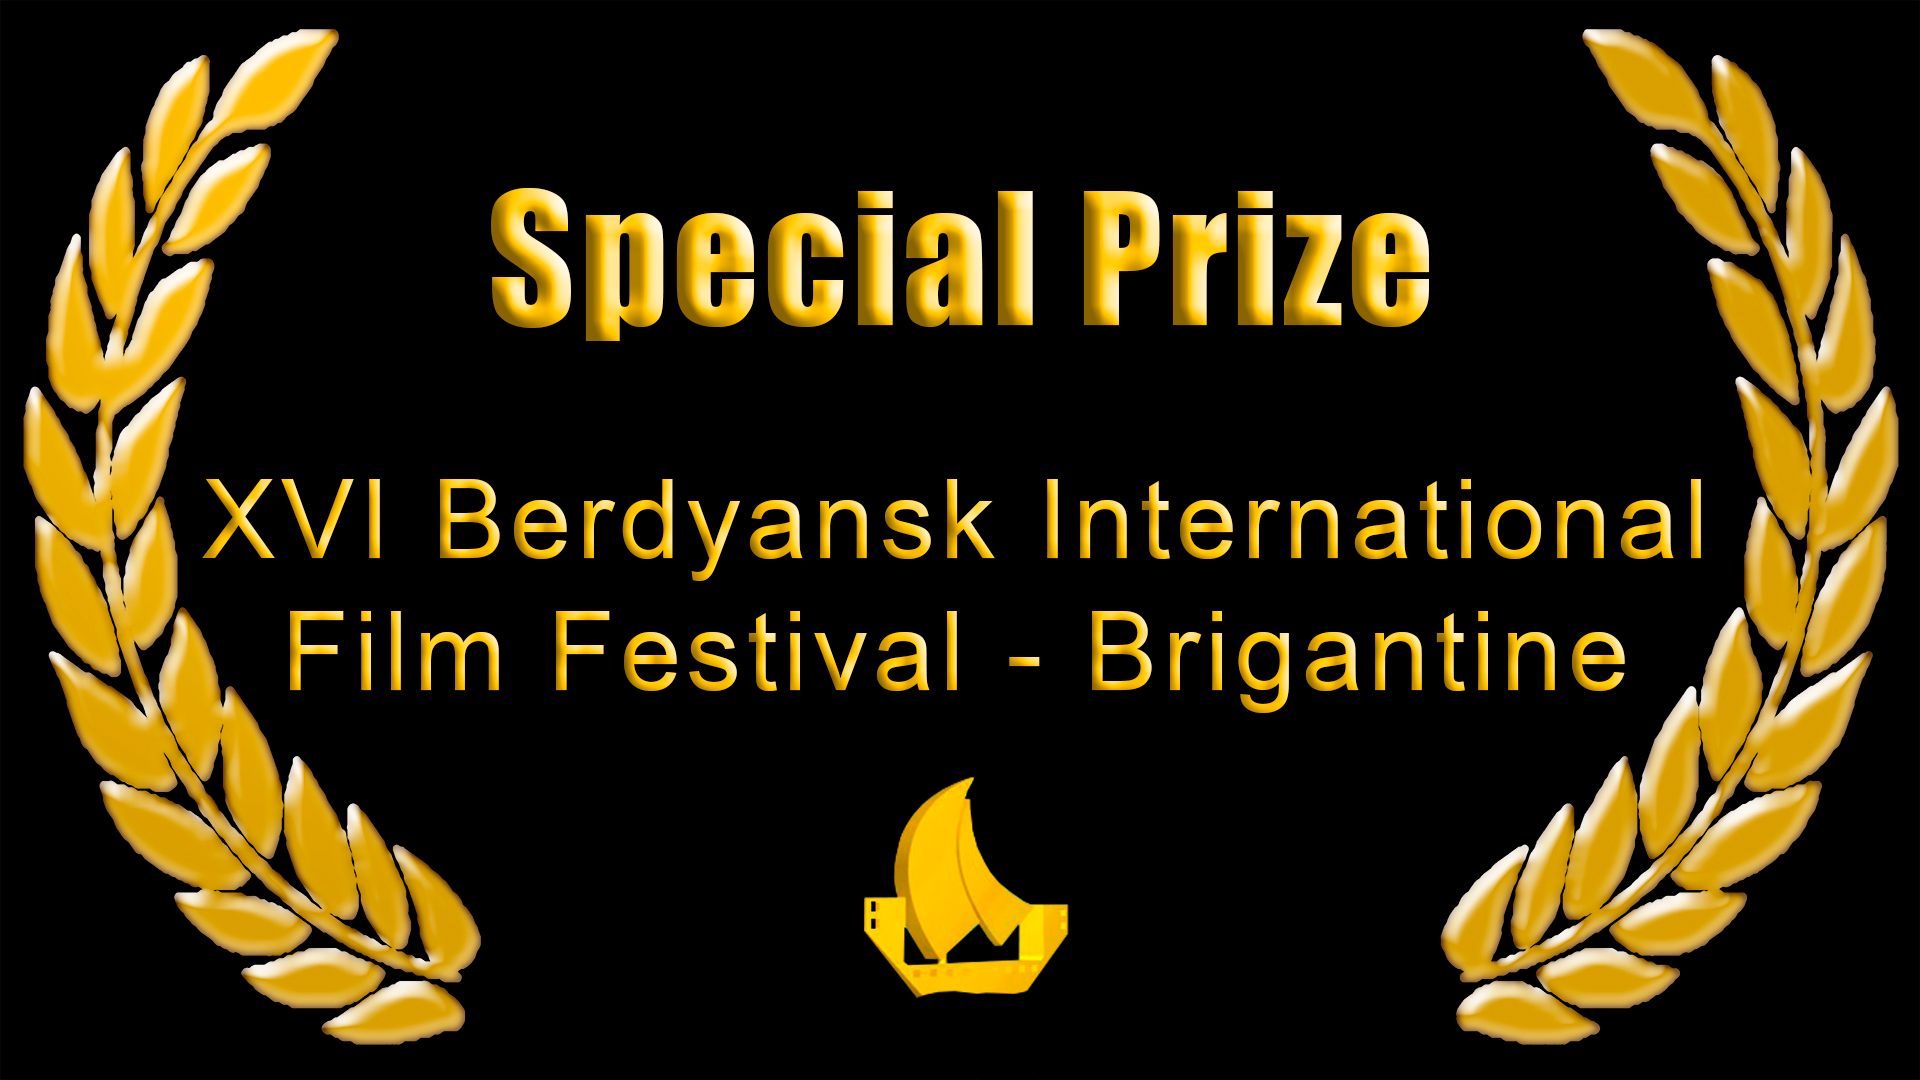 Berdyansk International Film Festival 2013